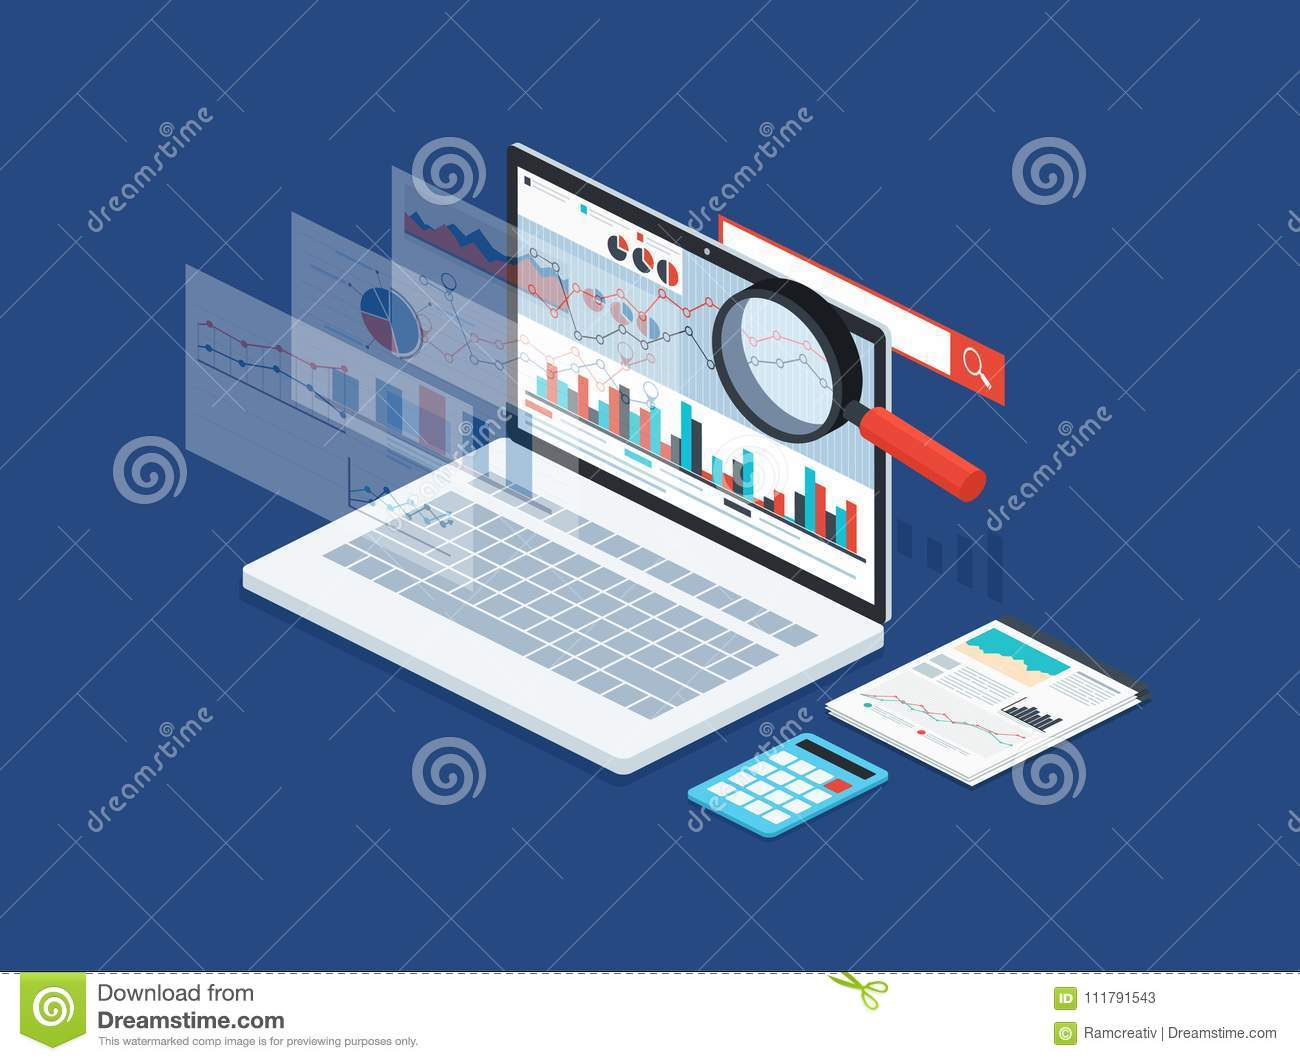 Analysis data and development statistic. Modern concept of business strategy, search information, digital marketing